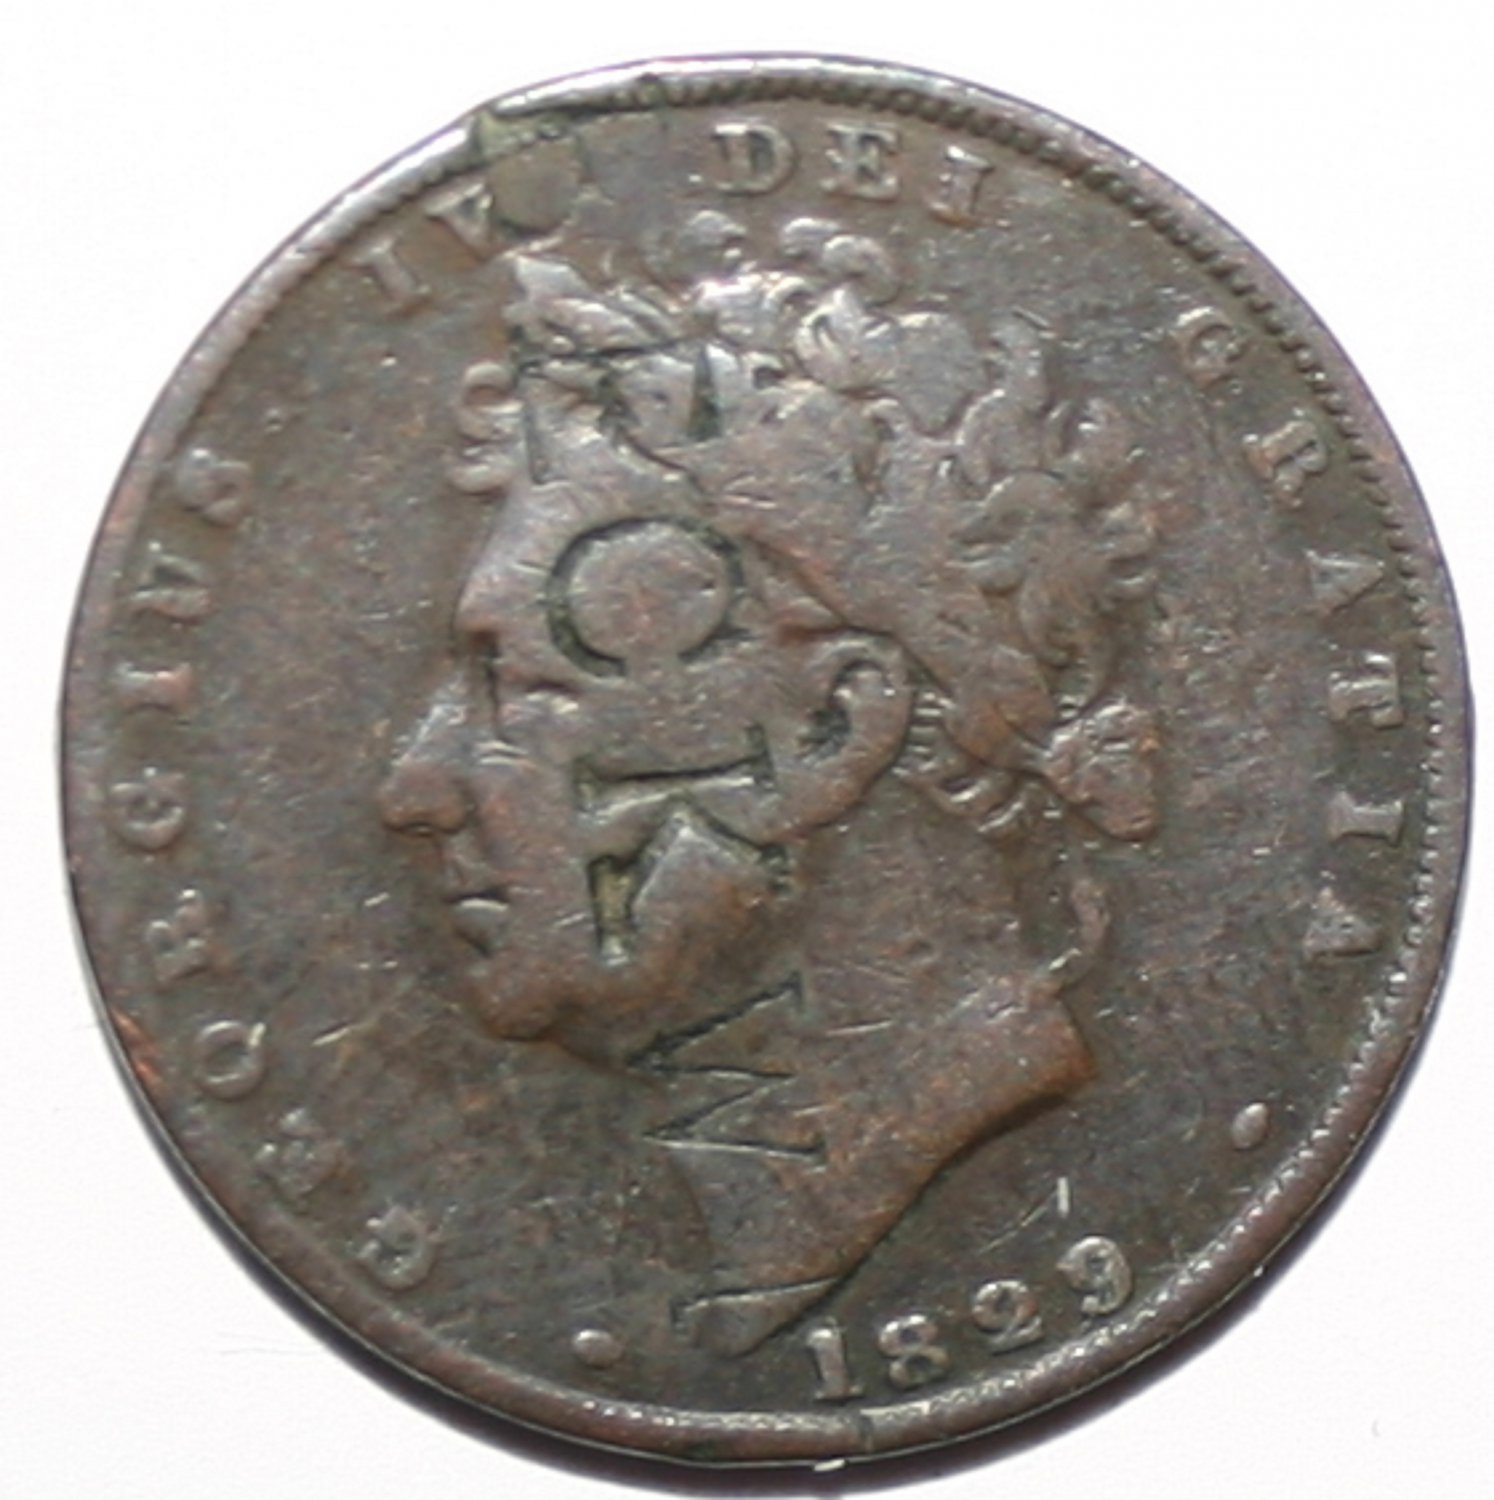 King George IV Farthing 1829 Stamped E.C.K.W Coin Mysterious